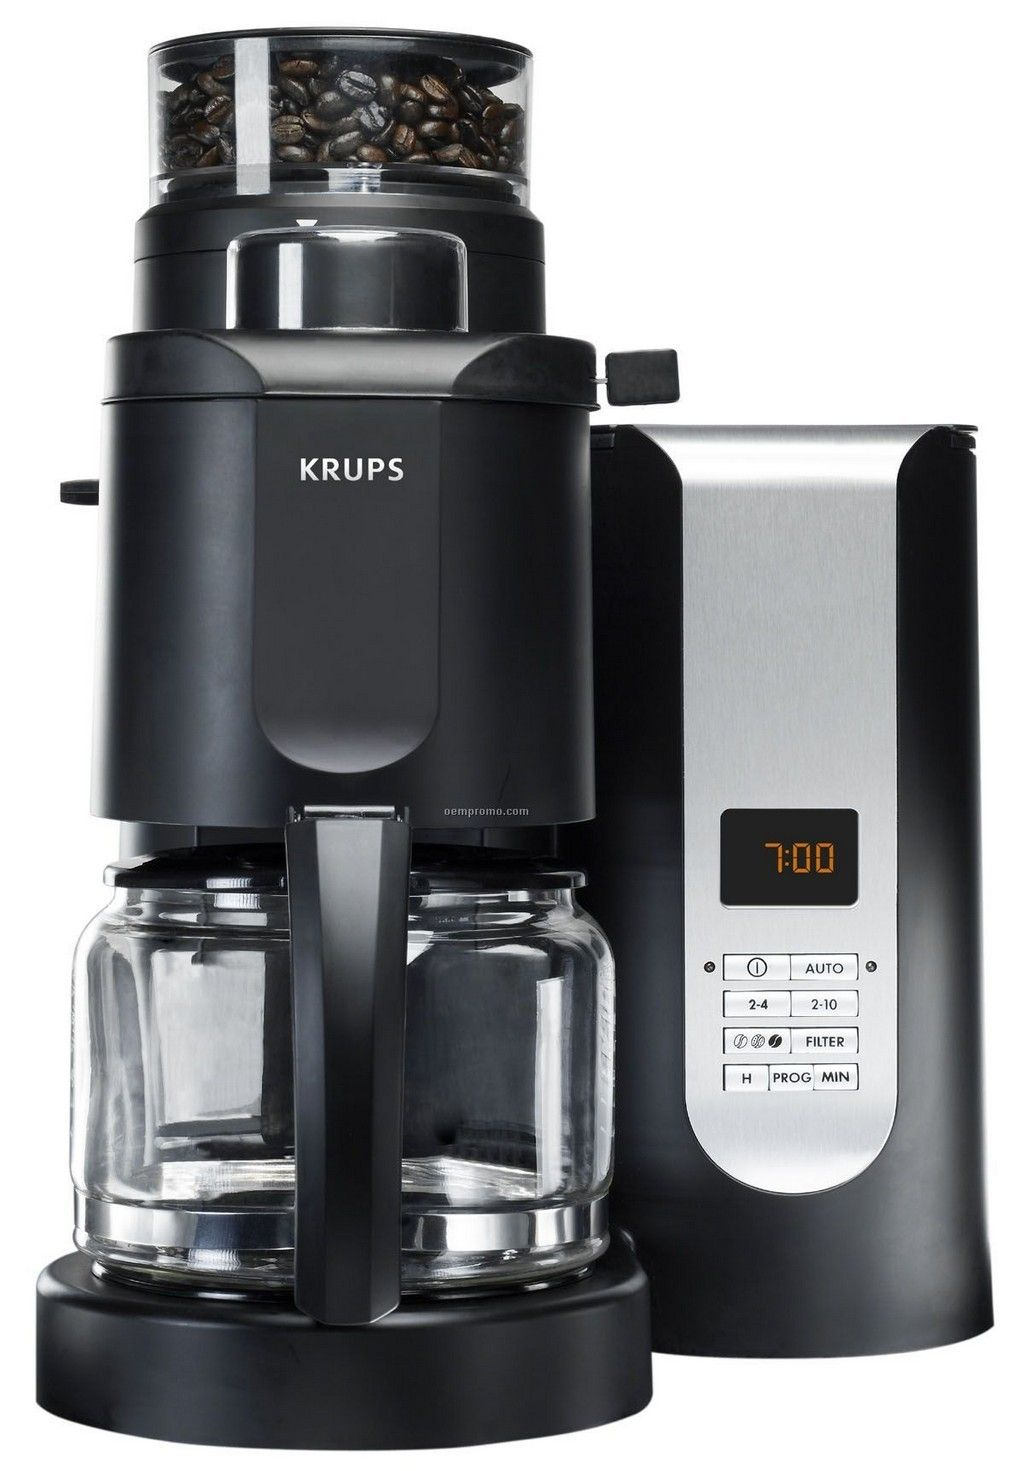 7d7f68787301 The Pro Grinder-Brewer coffee machine from Krups grinds and brews the  perfect cup of morning coffee day after day. * For more information, visit  image link.